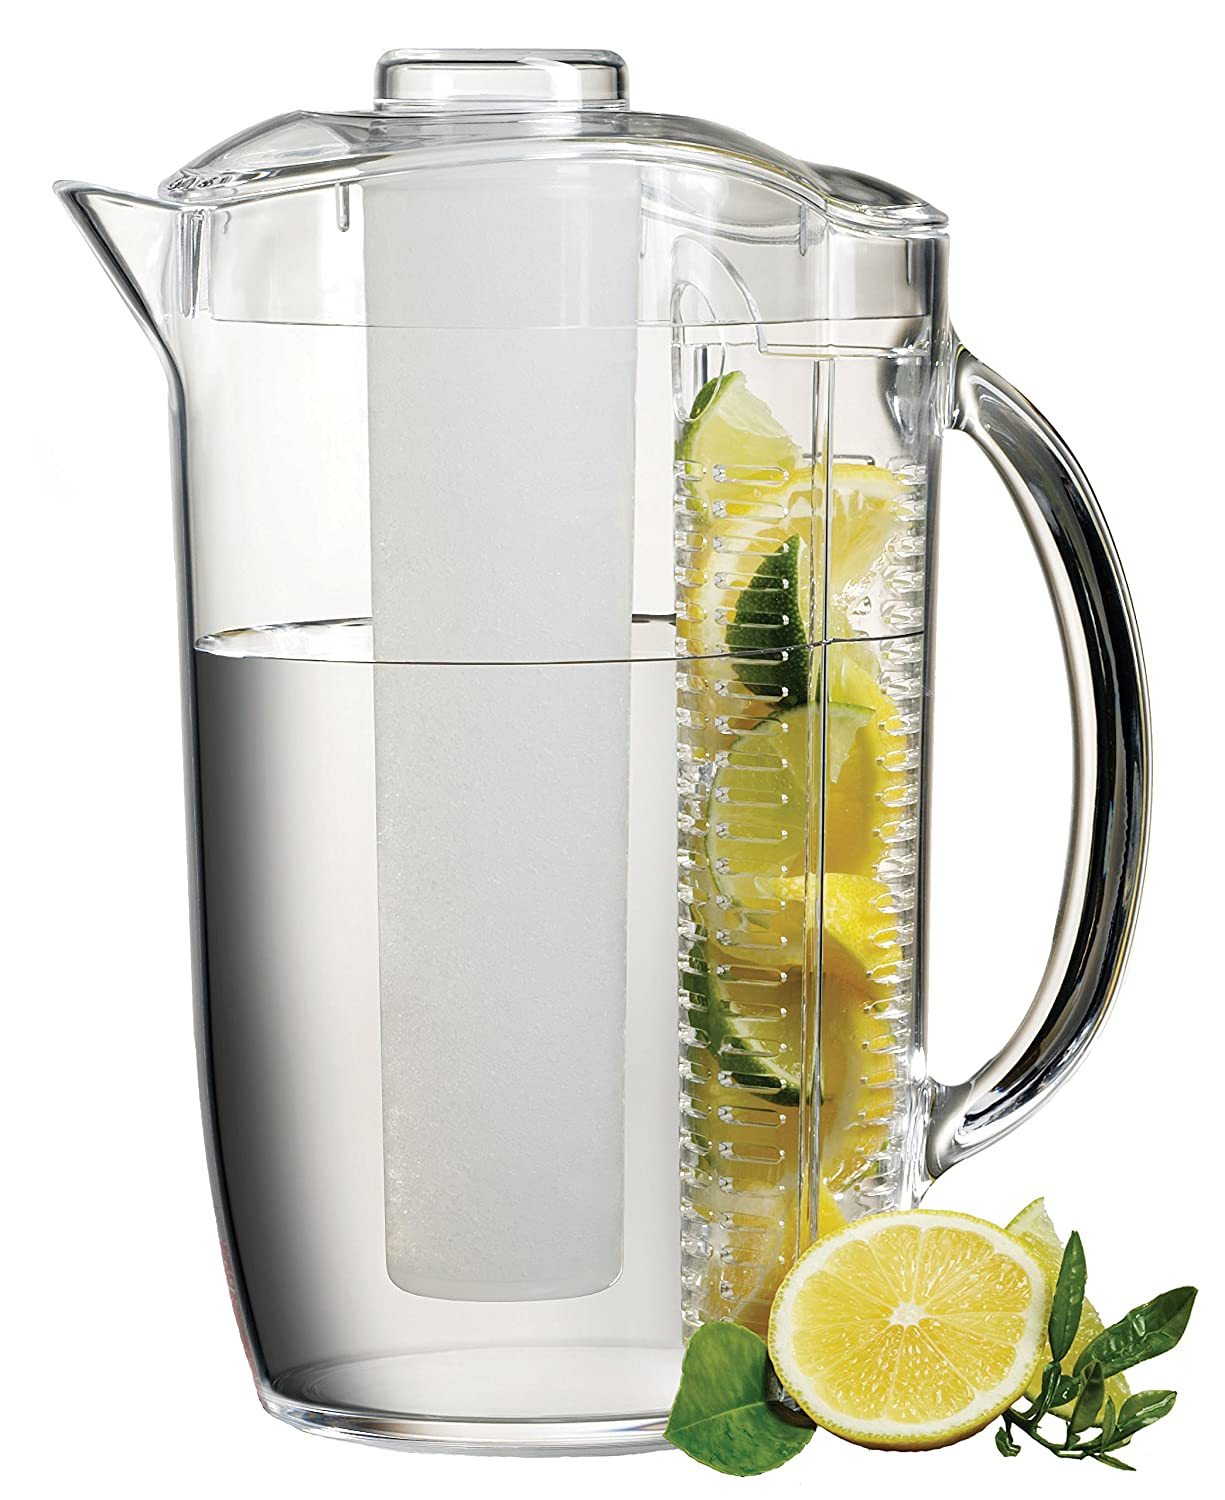 Prodyne 17412 Iced Fruit Infusion Pitcher FI-4